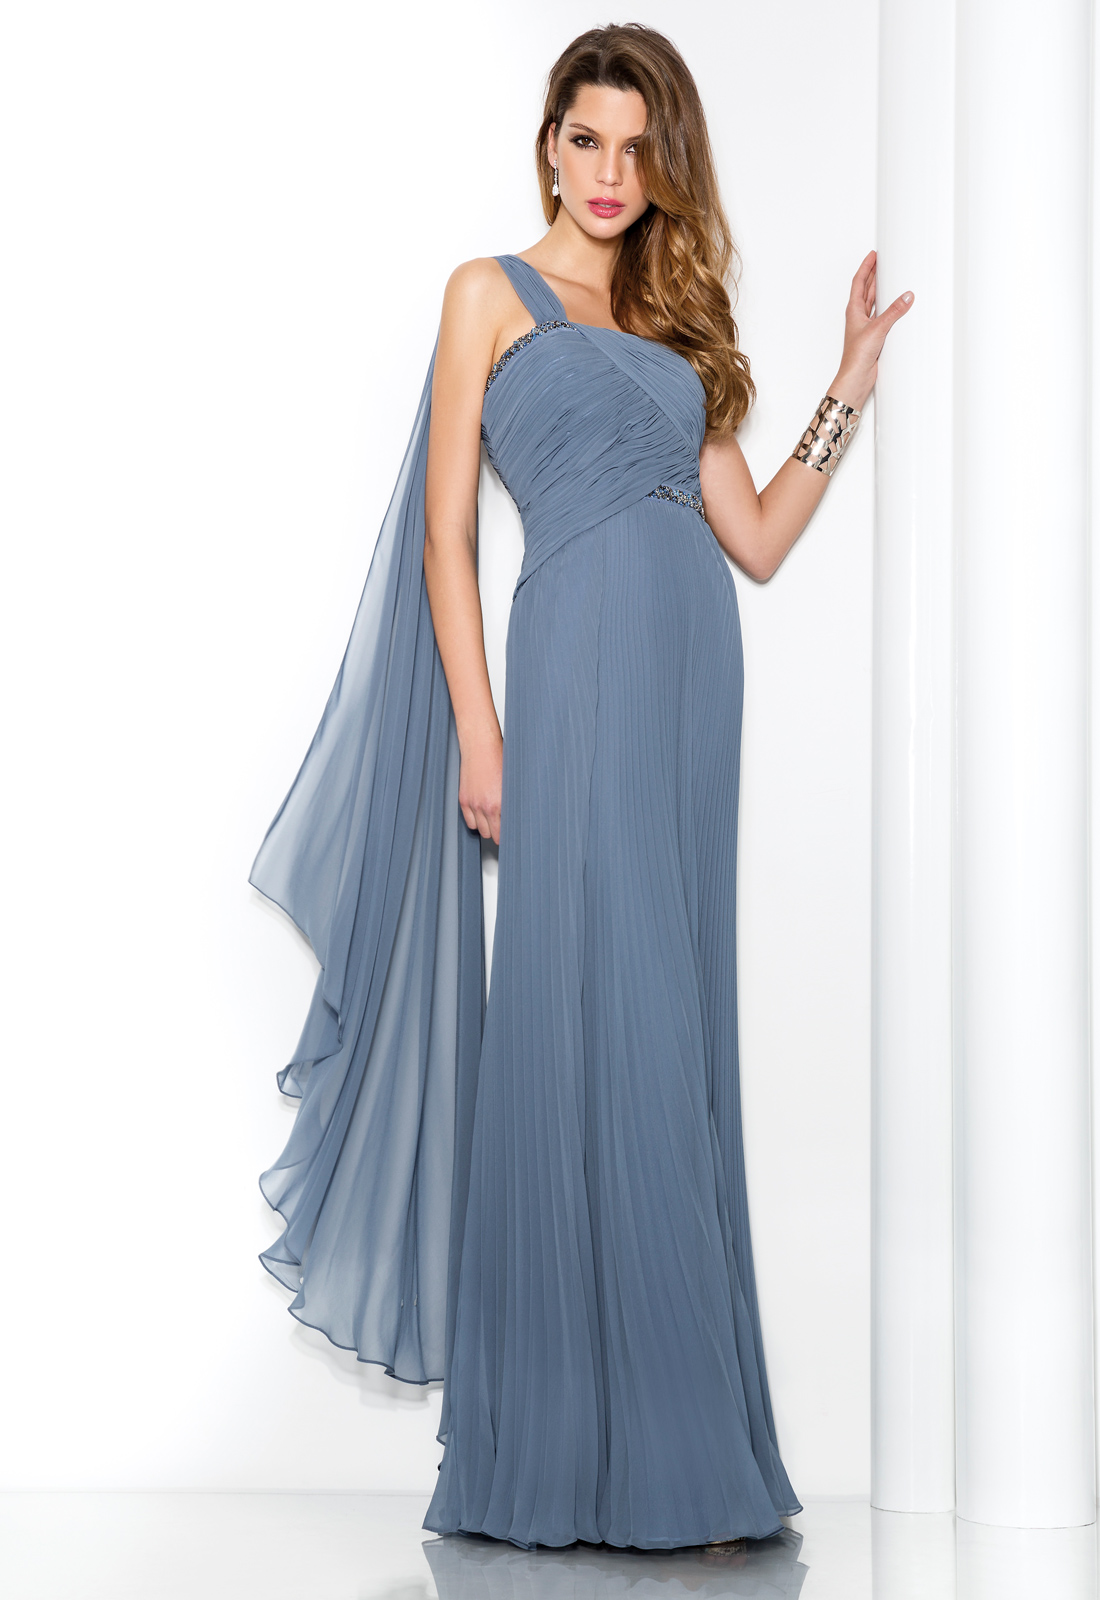 Simple Sheath/Column One Shoulder Beading Ruching Sashes/Ribbons Floor-length Chiffon Cocktail Dresses